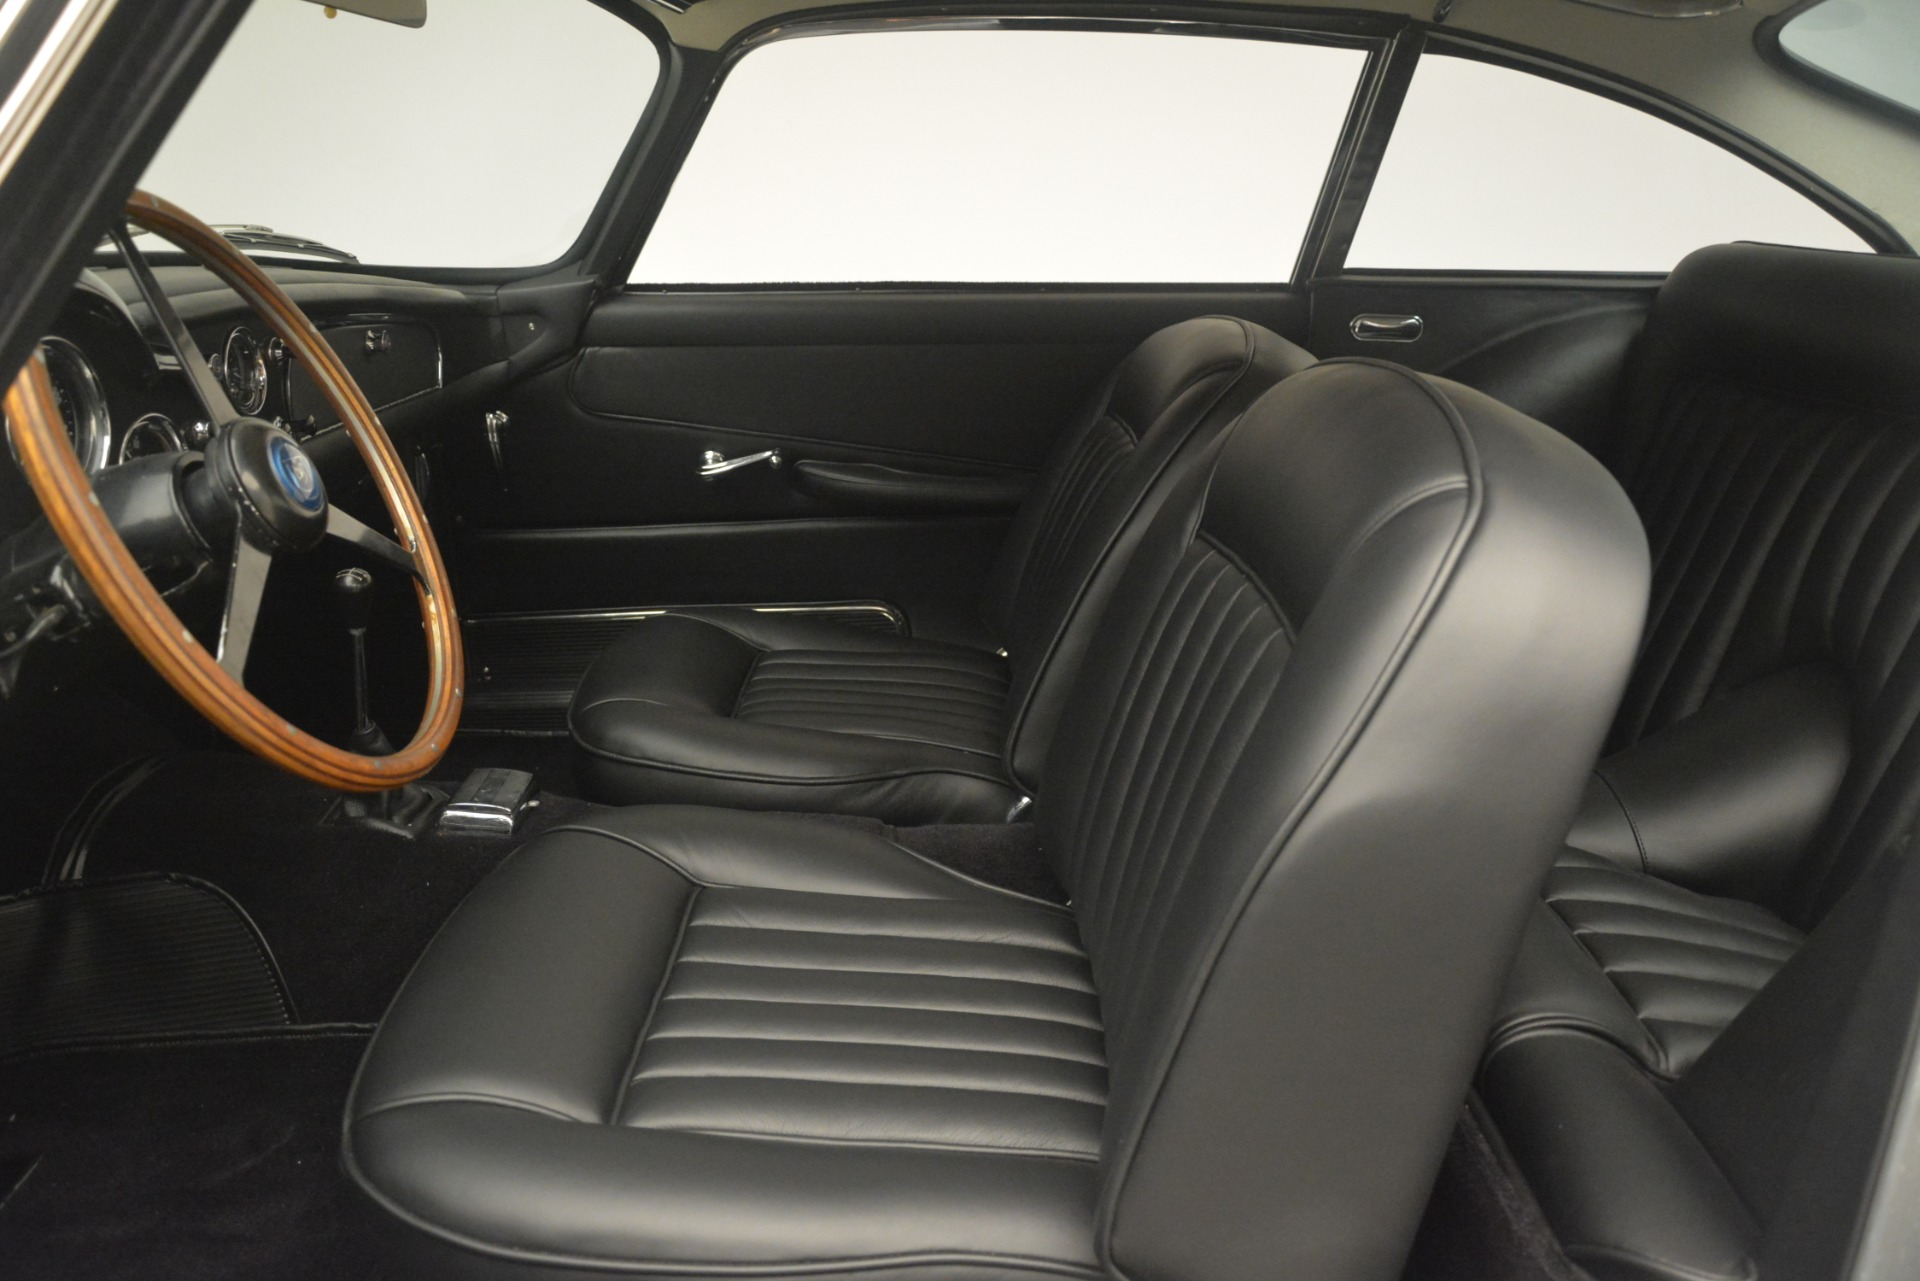 Used 1961 Aston Martin DB4 Series IV Coupe For Sale In Westport, CT 3186_p20